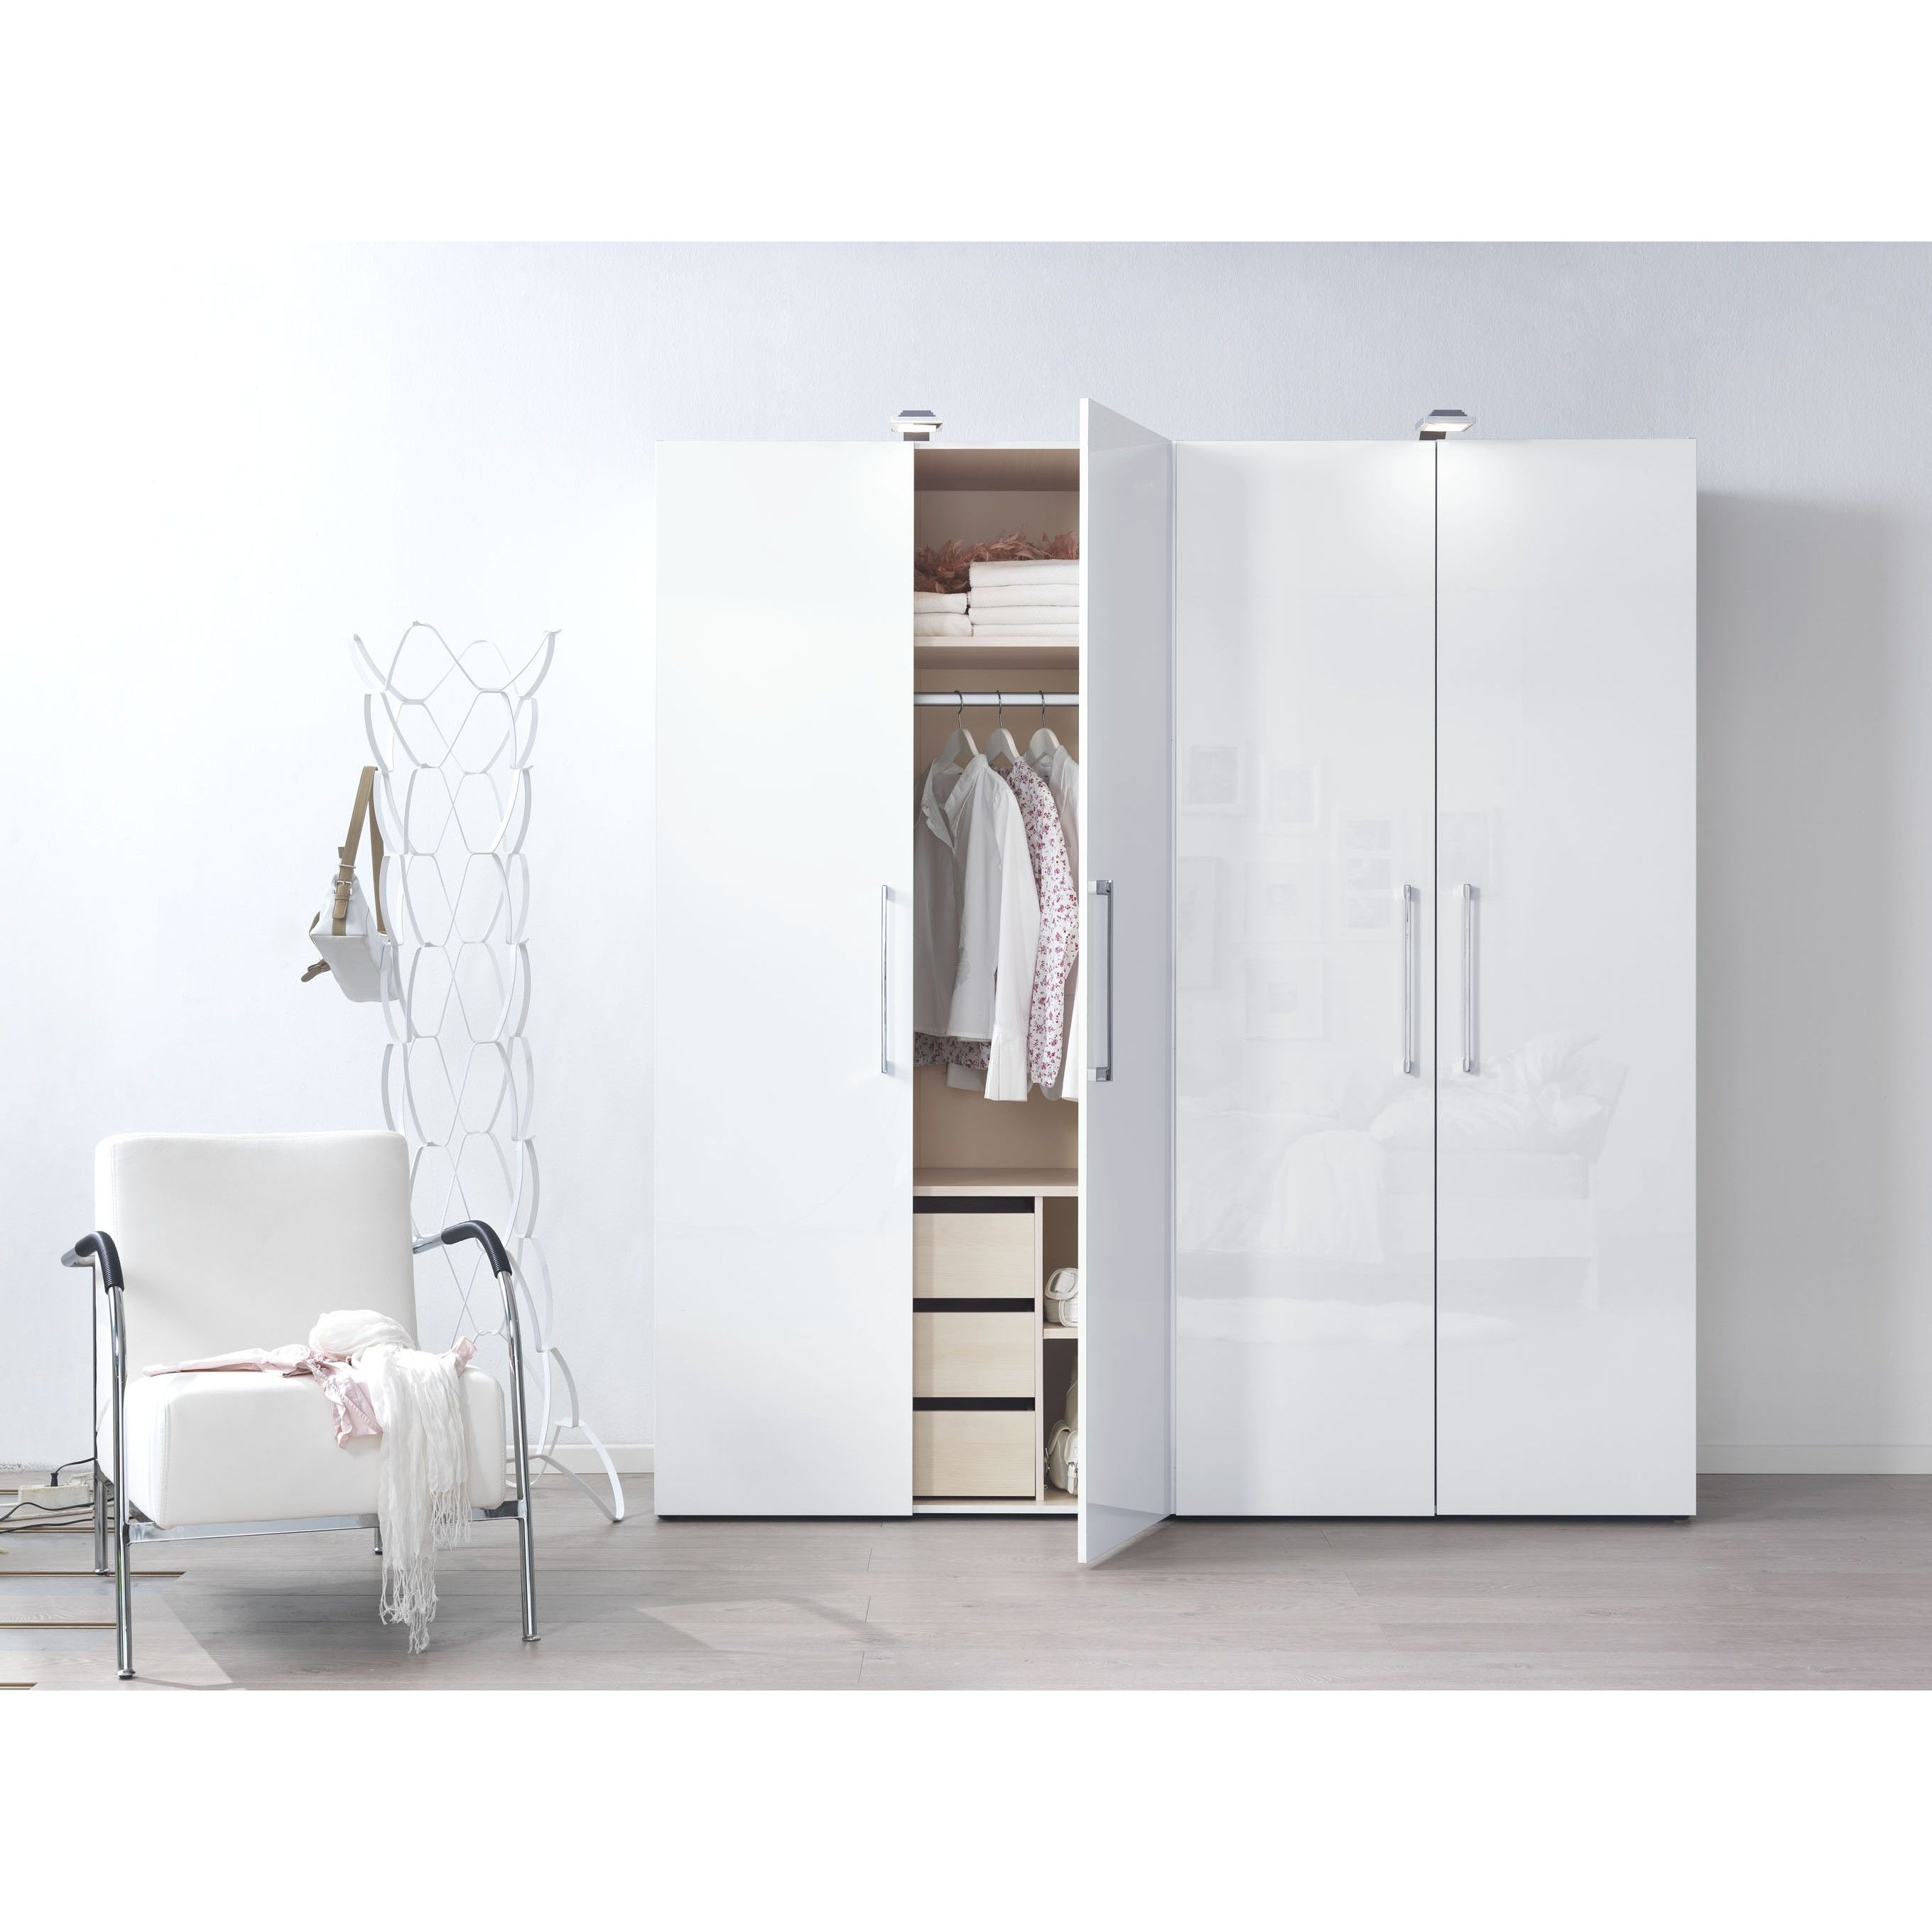 High Gloss Bedroom Cupboards Lemon Bedroom Accessories Toddler Bedroom Curtains Black And White Bedroom Cupboard Designs: High Gloss White Wardrobes - Google Search